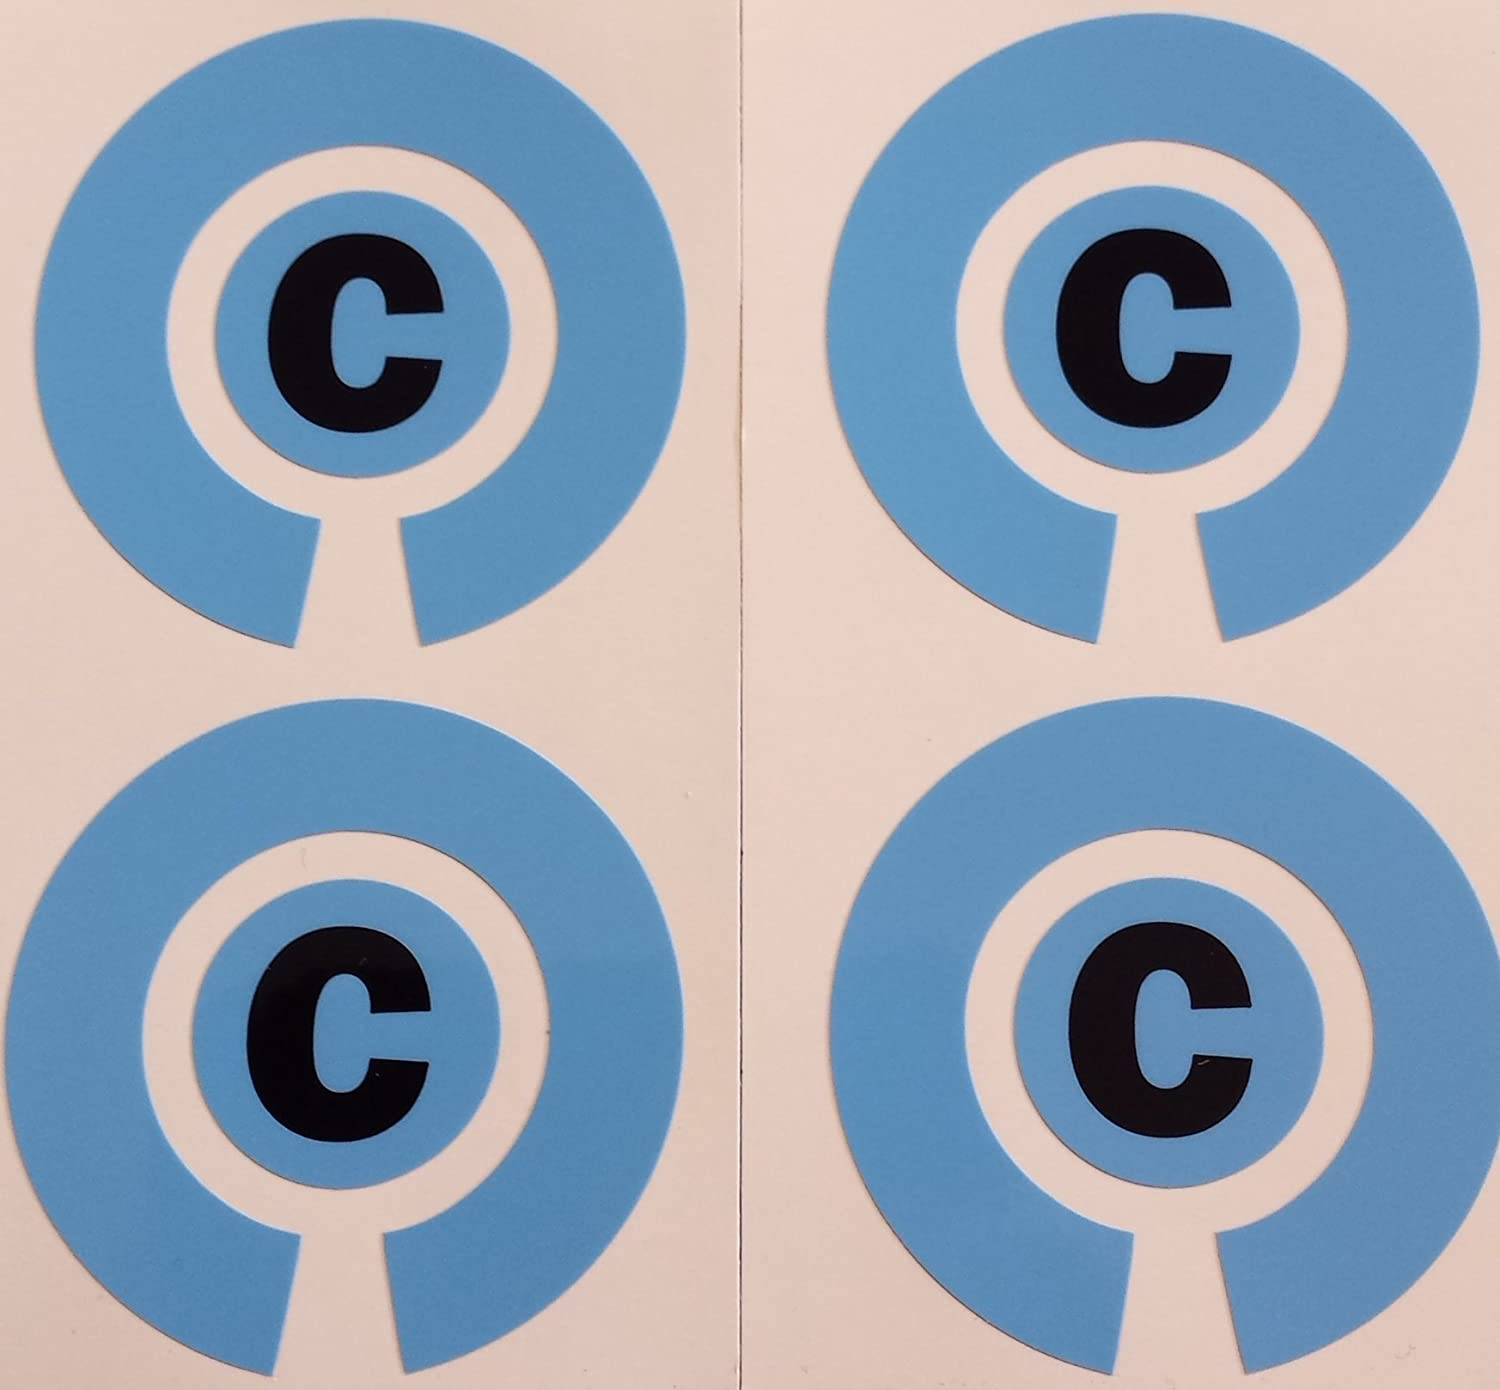 Crown Green Lawn Indoor Bowls Adhesive Lettered Coloured Marker Labels Set of 4 (Blue, C)